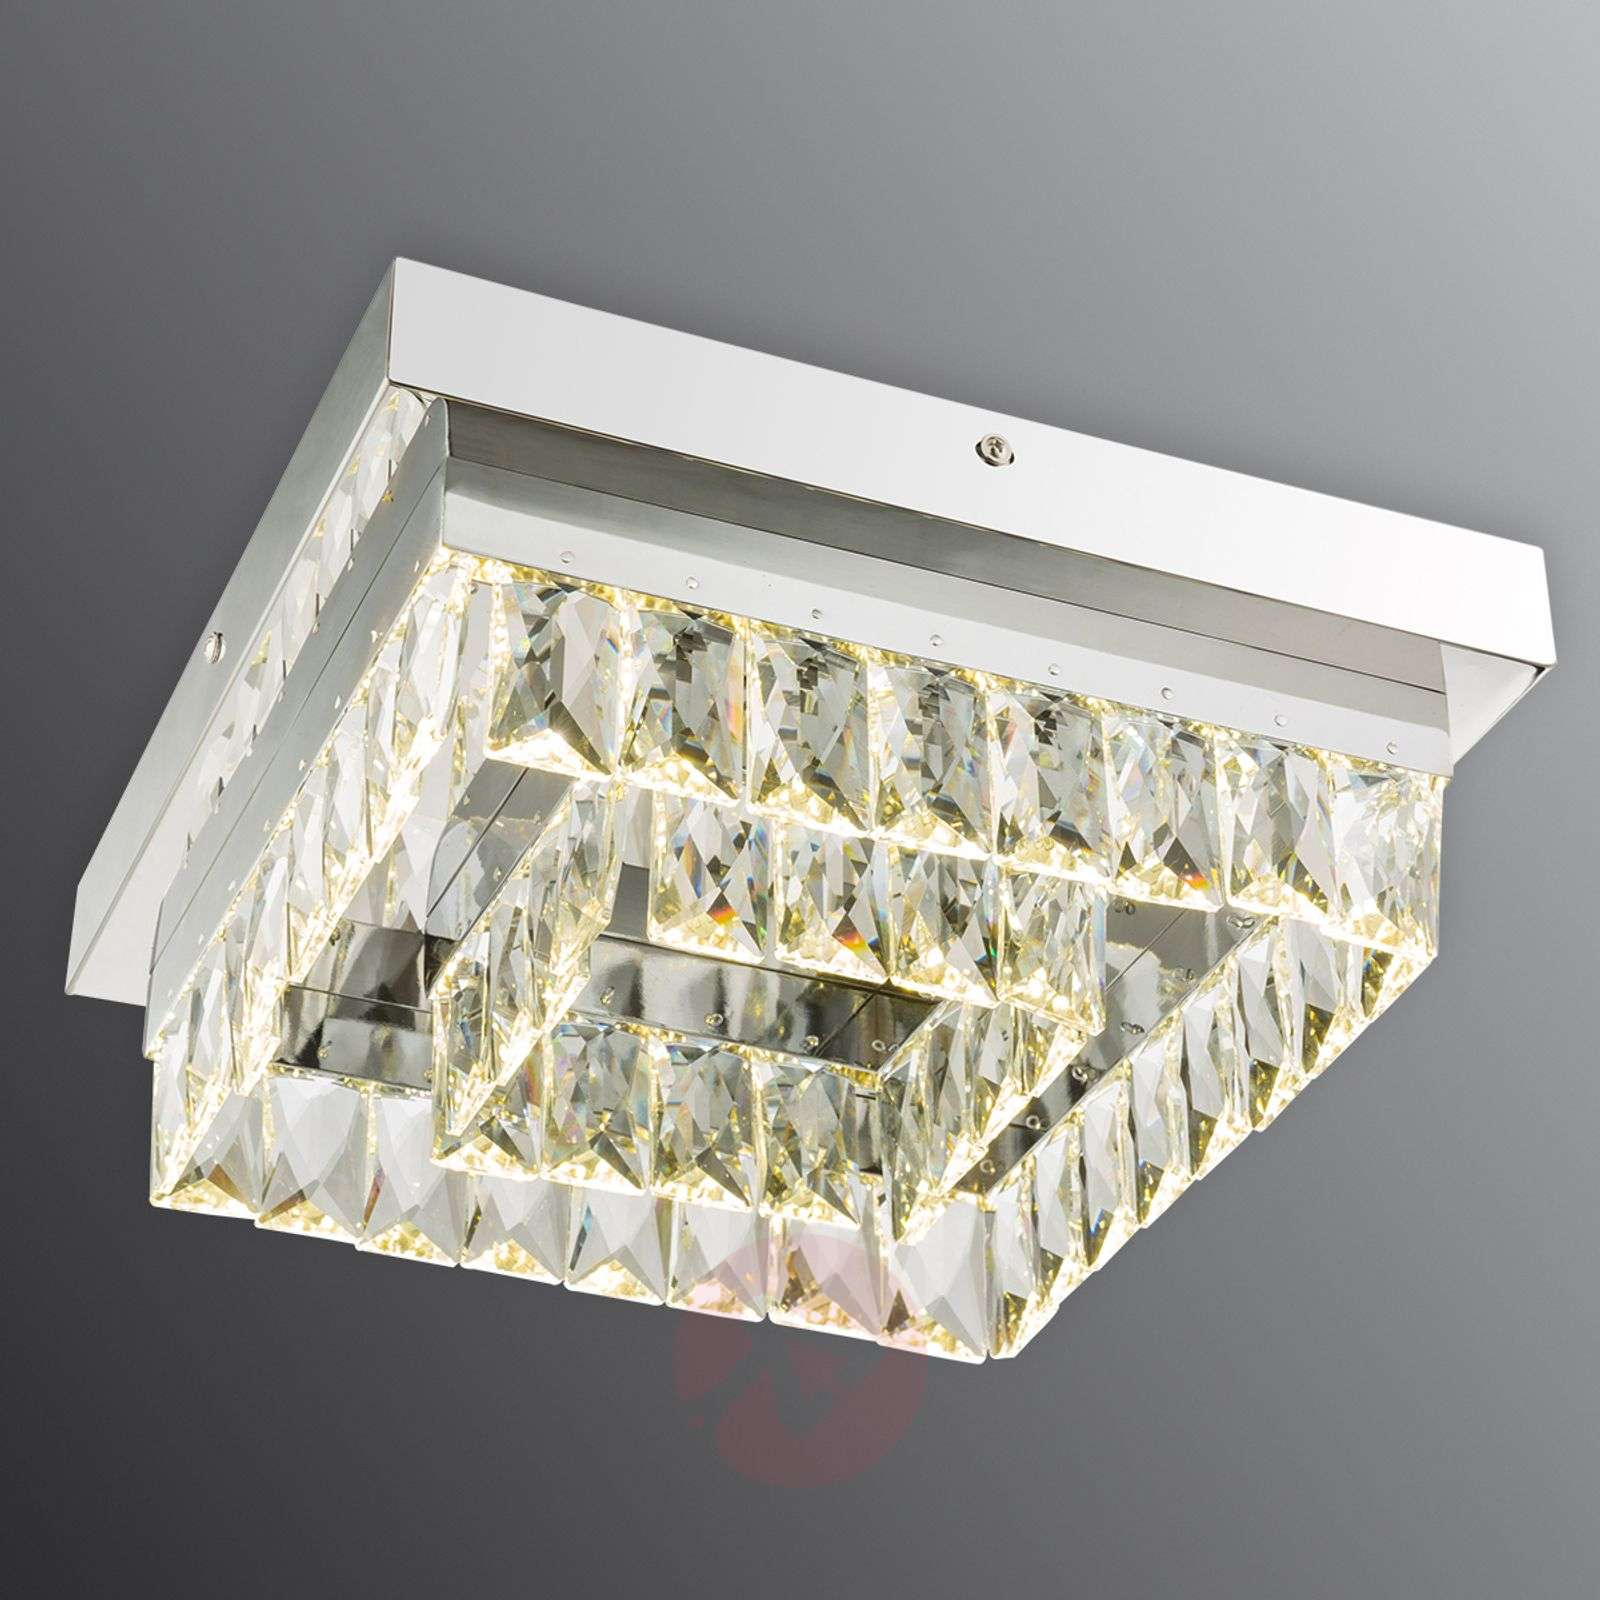 Plafoniere Cristallo : Acquista plafoniera quadrata febe led cristallo 30 cm lampade.it